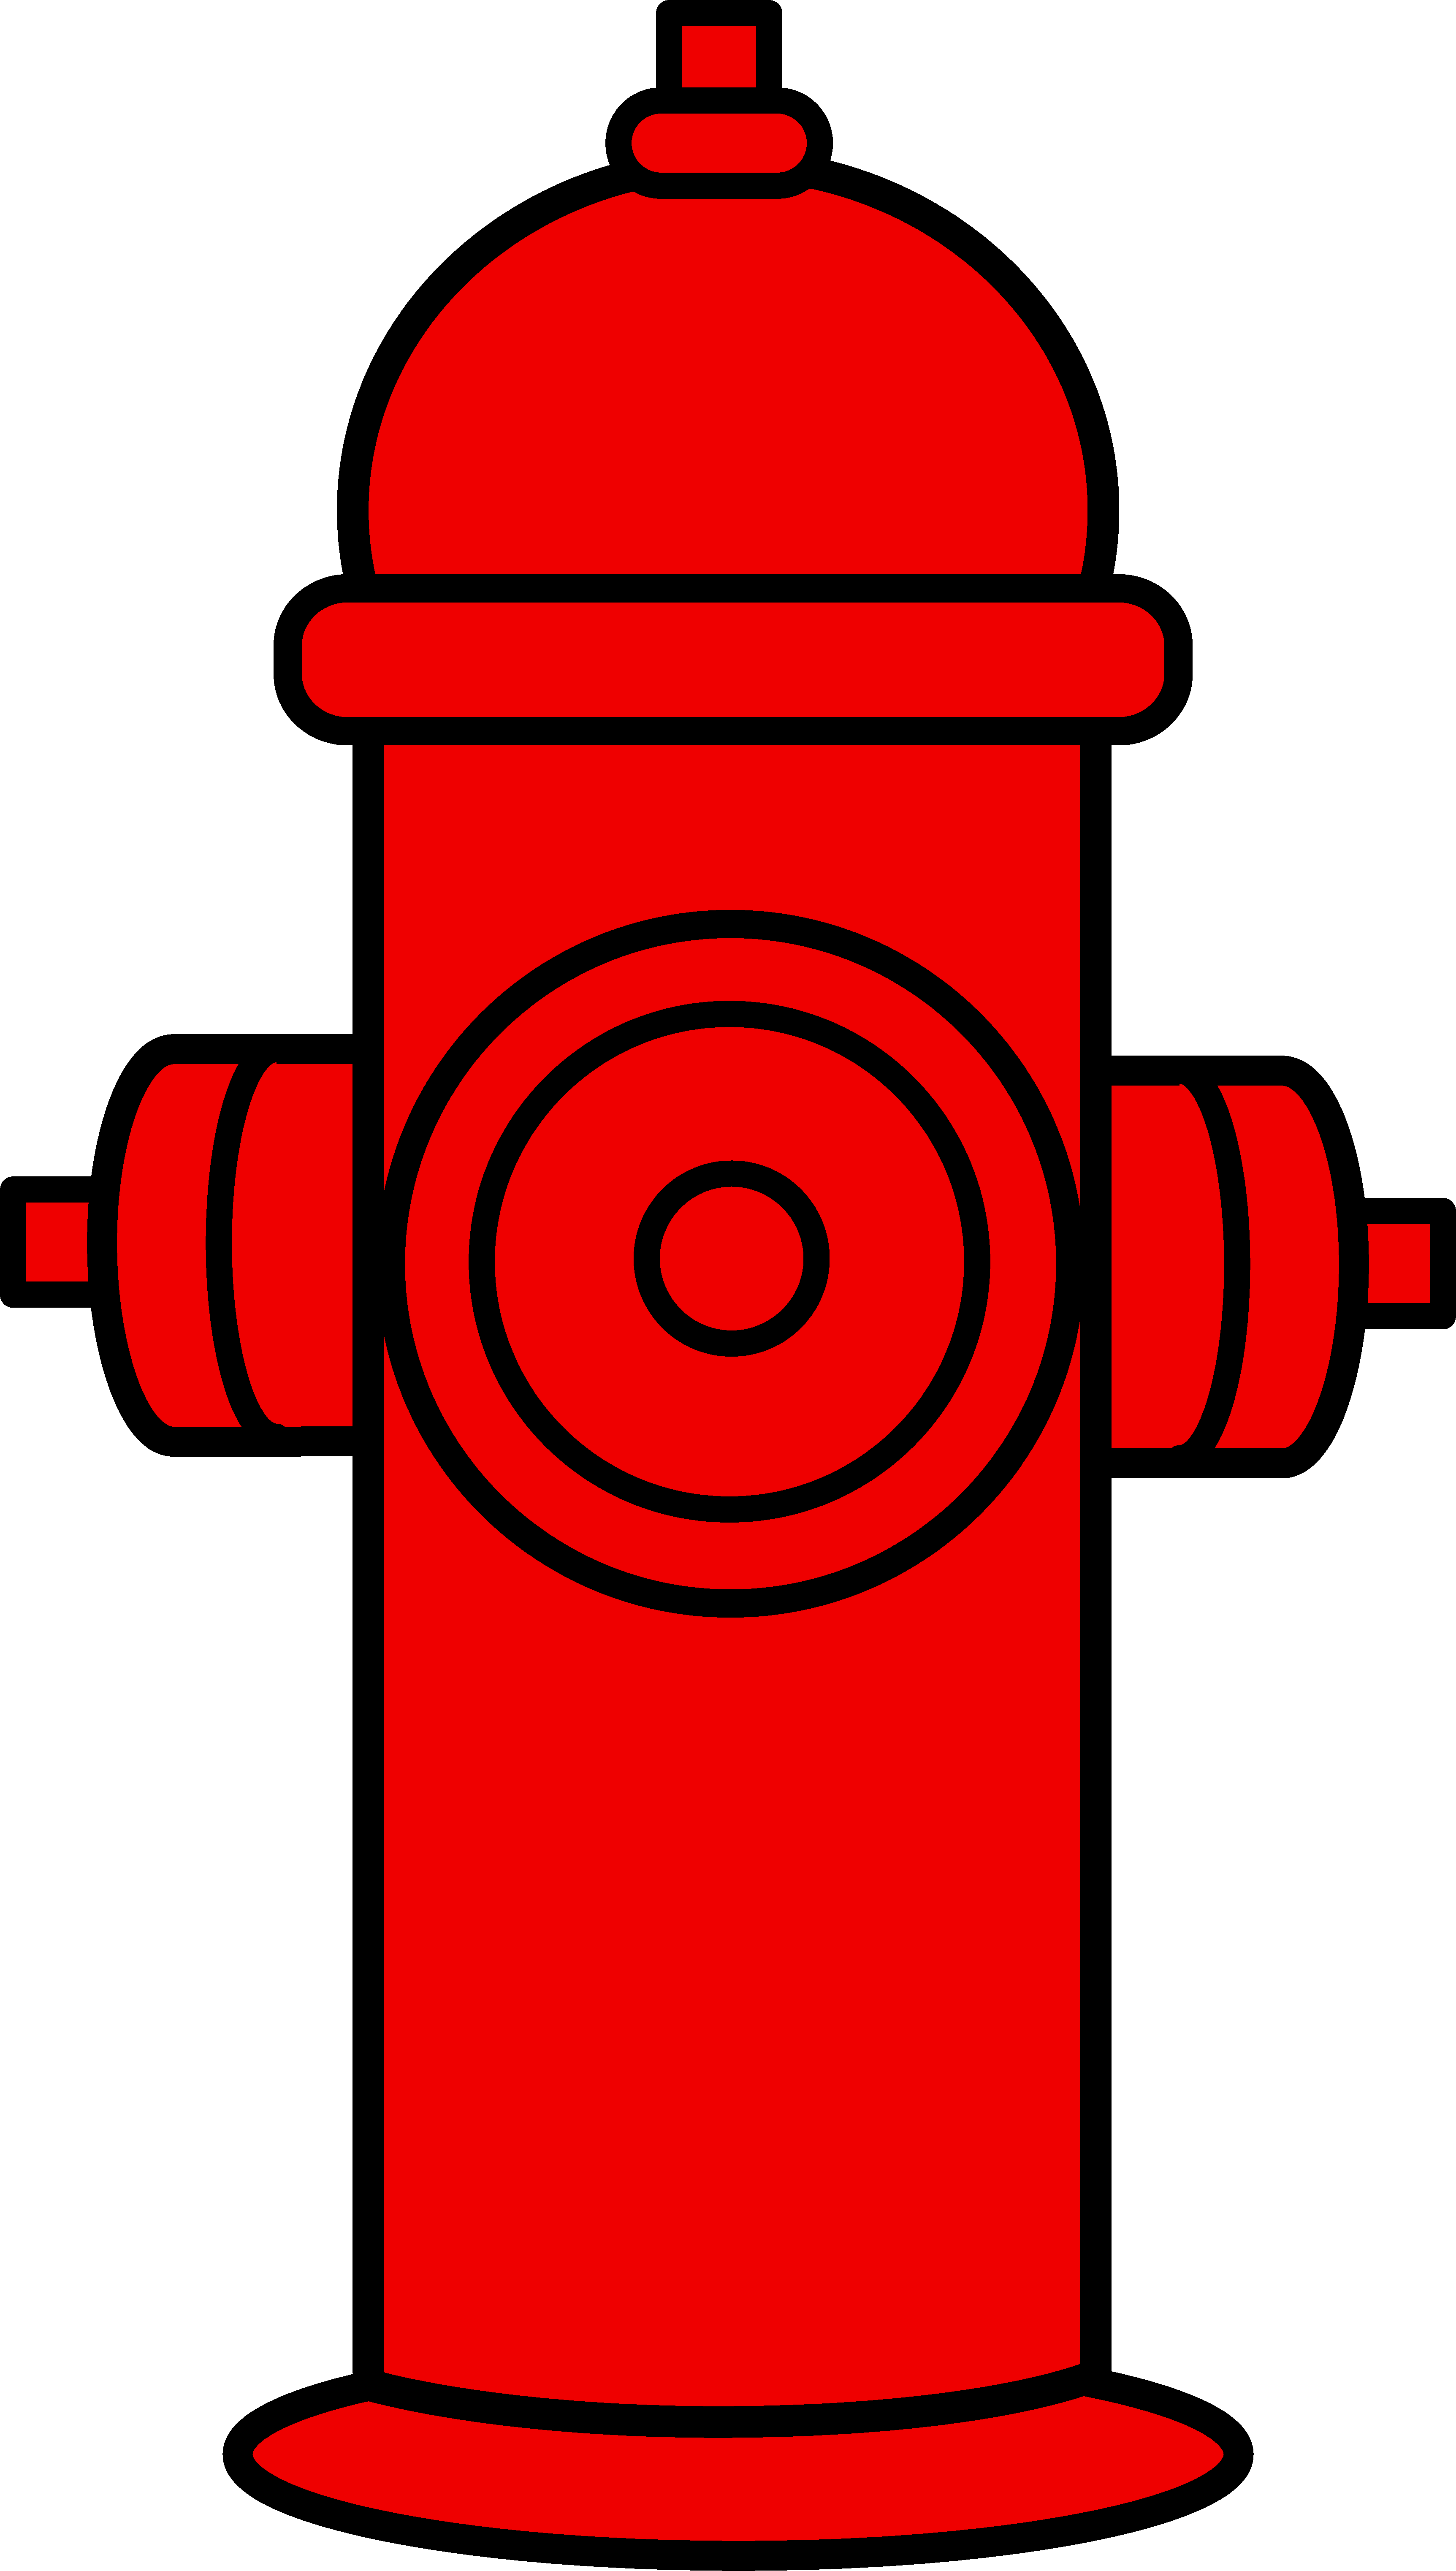 Red Fire Hydrant Clipart.